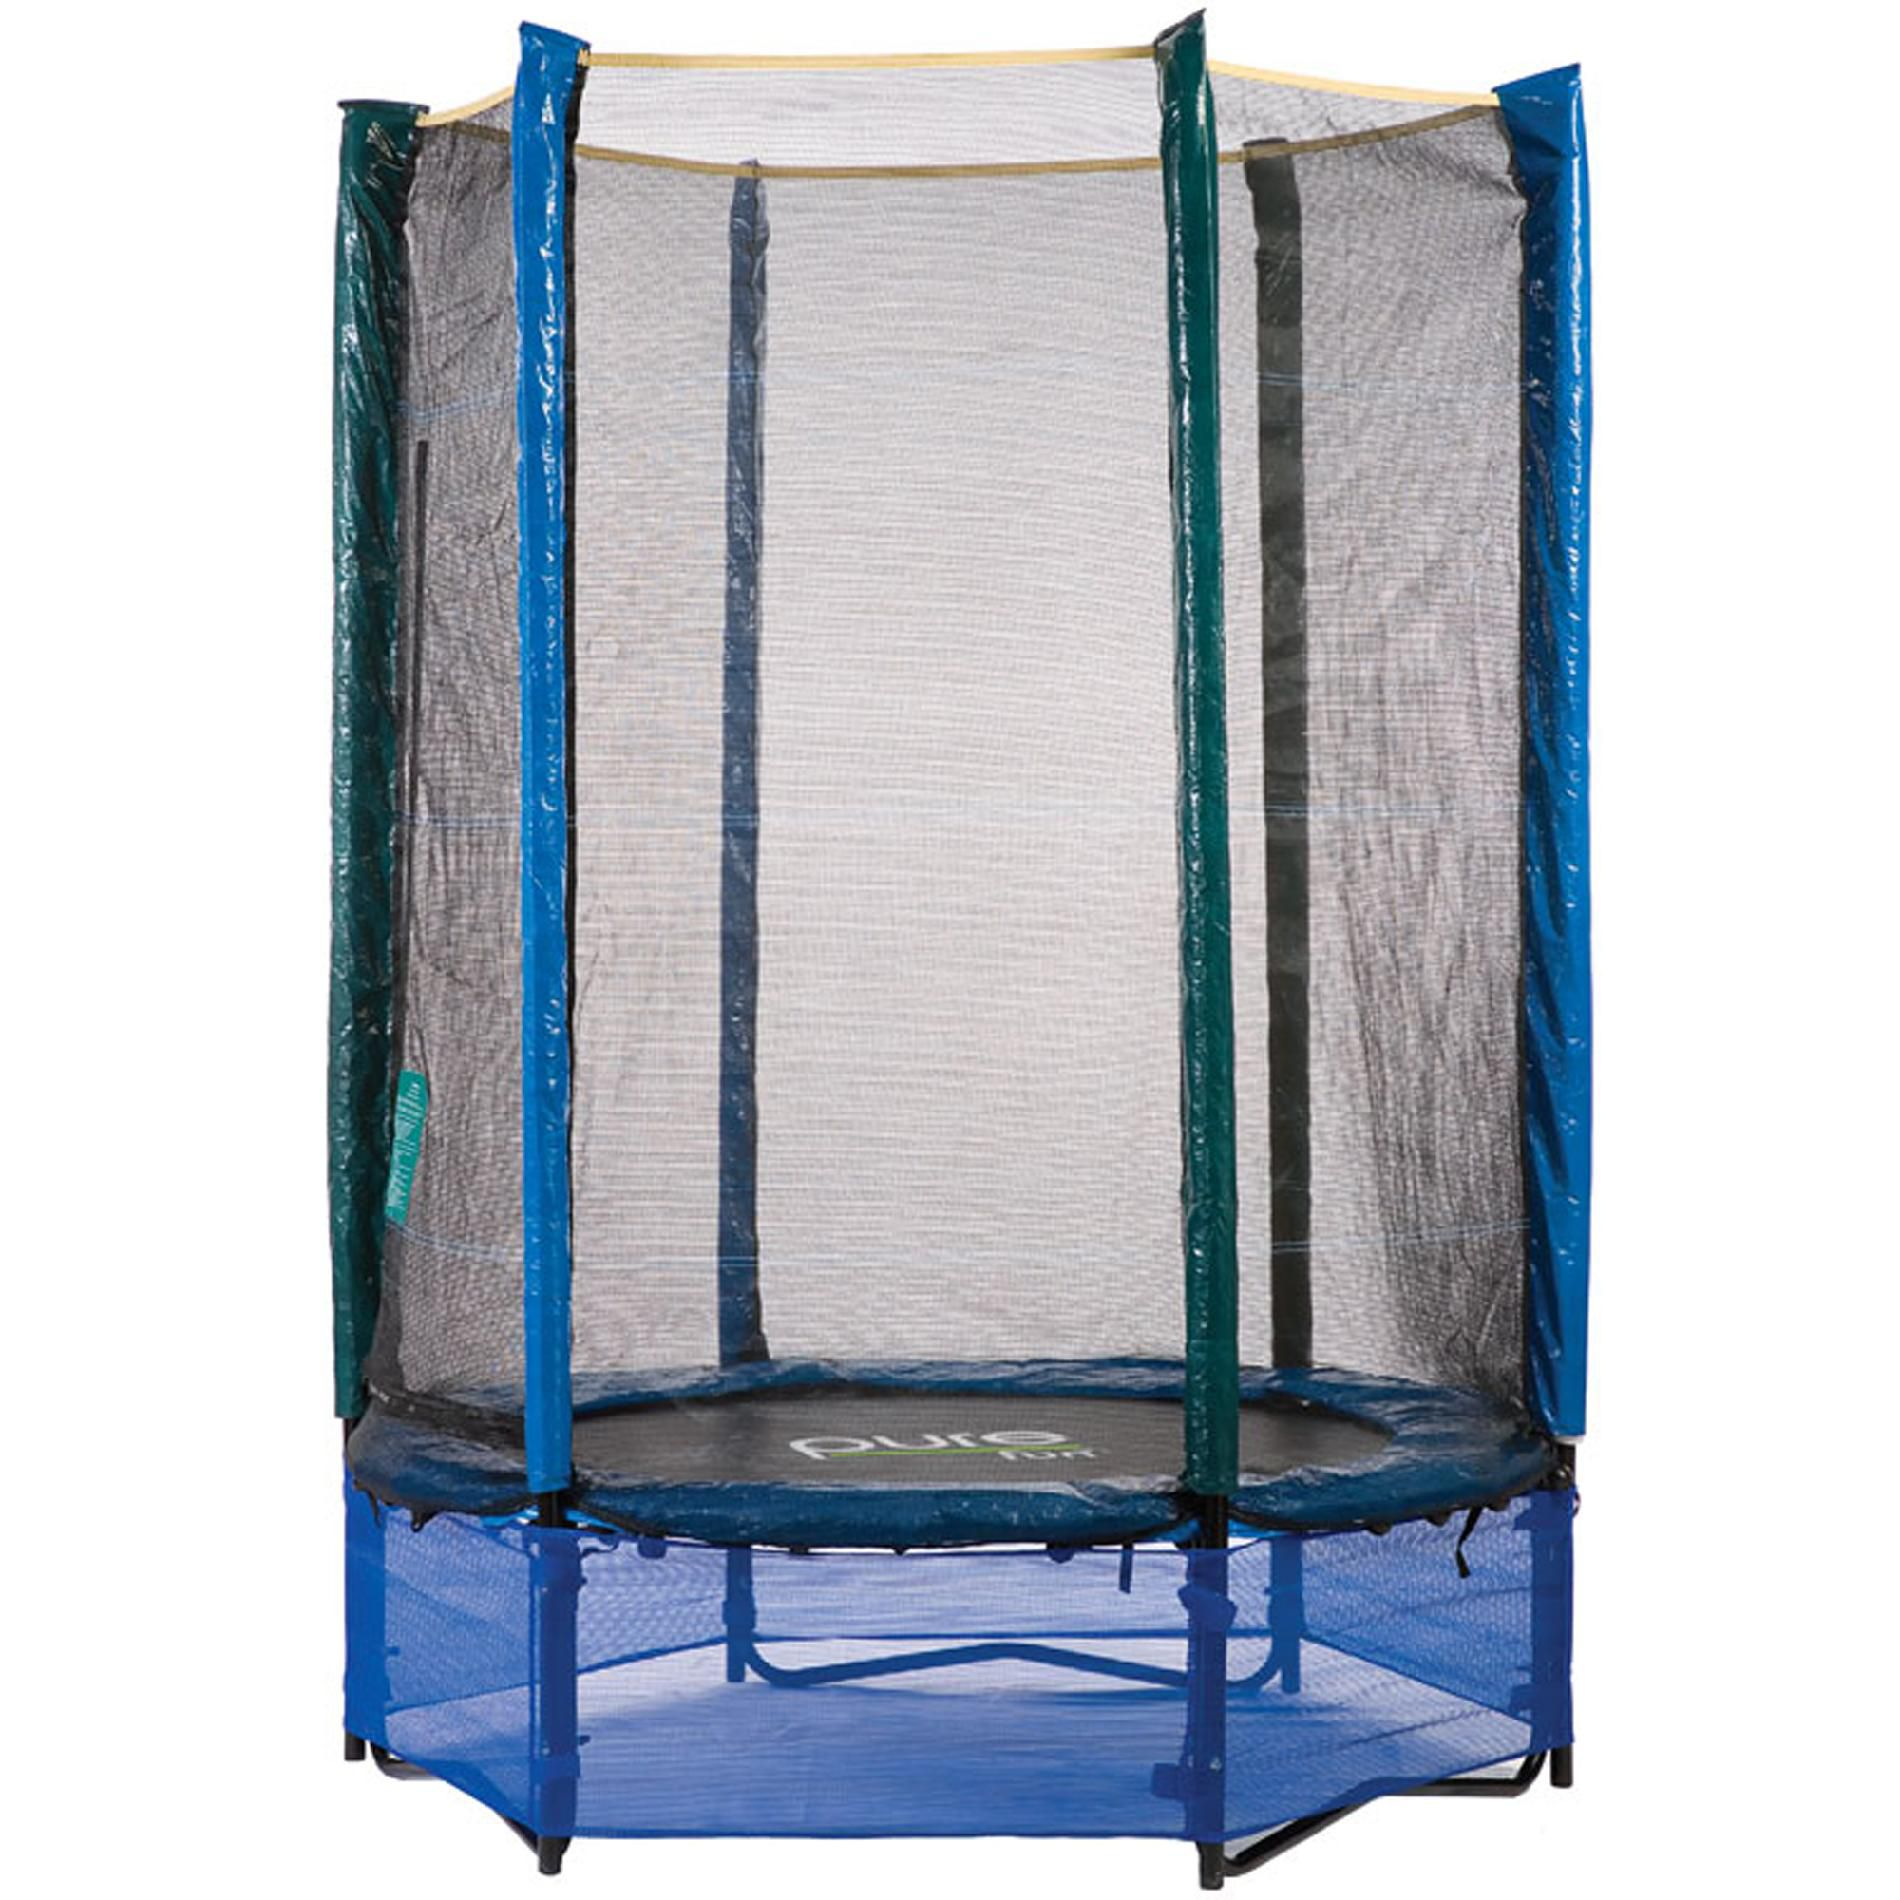 Pure Fun 55 Inch Kids Trampoline & Enclosure